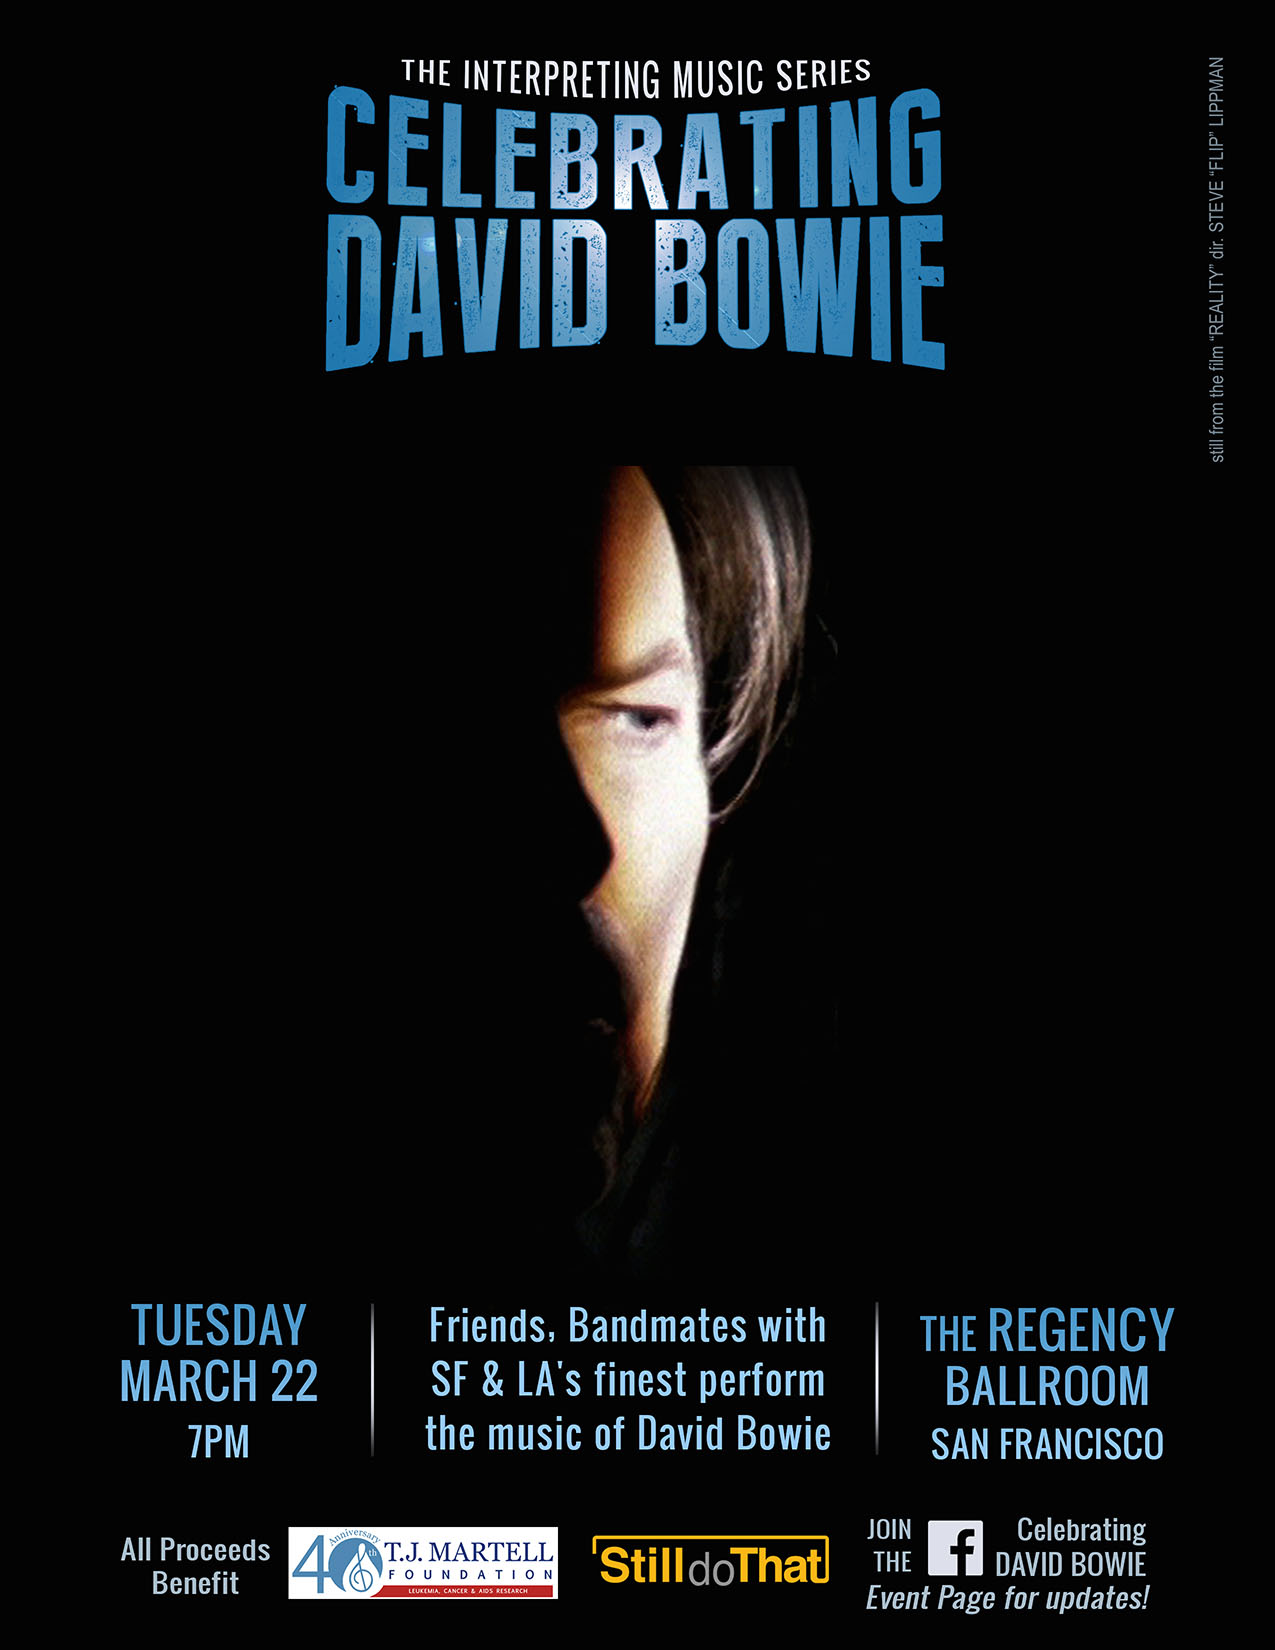 Dan Celebrating DavidBowie flyer TJM (1)